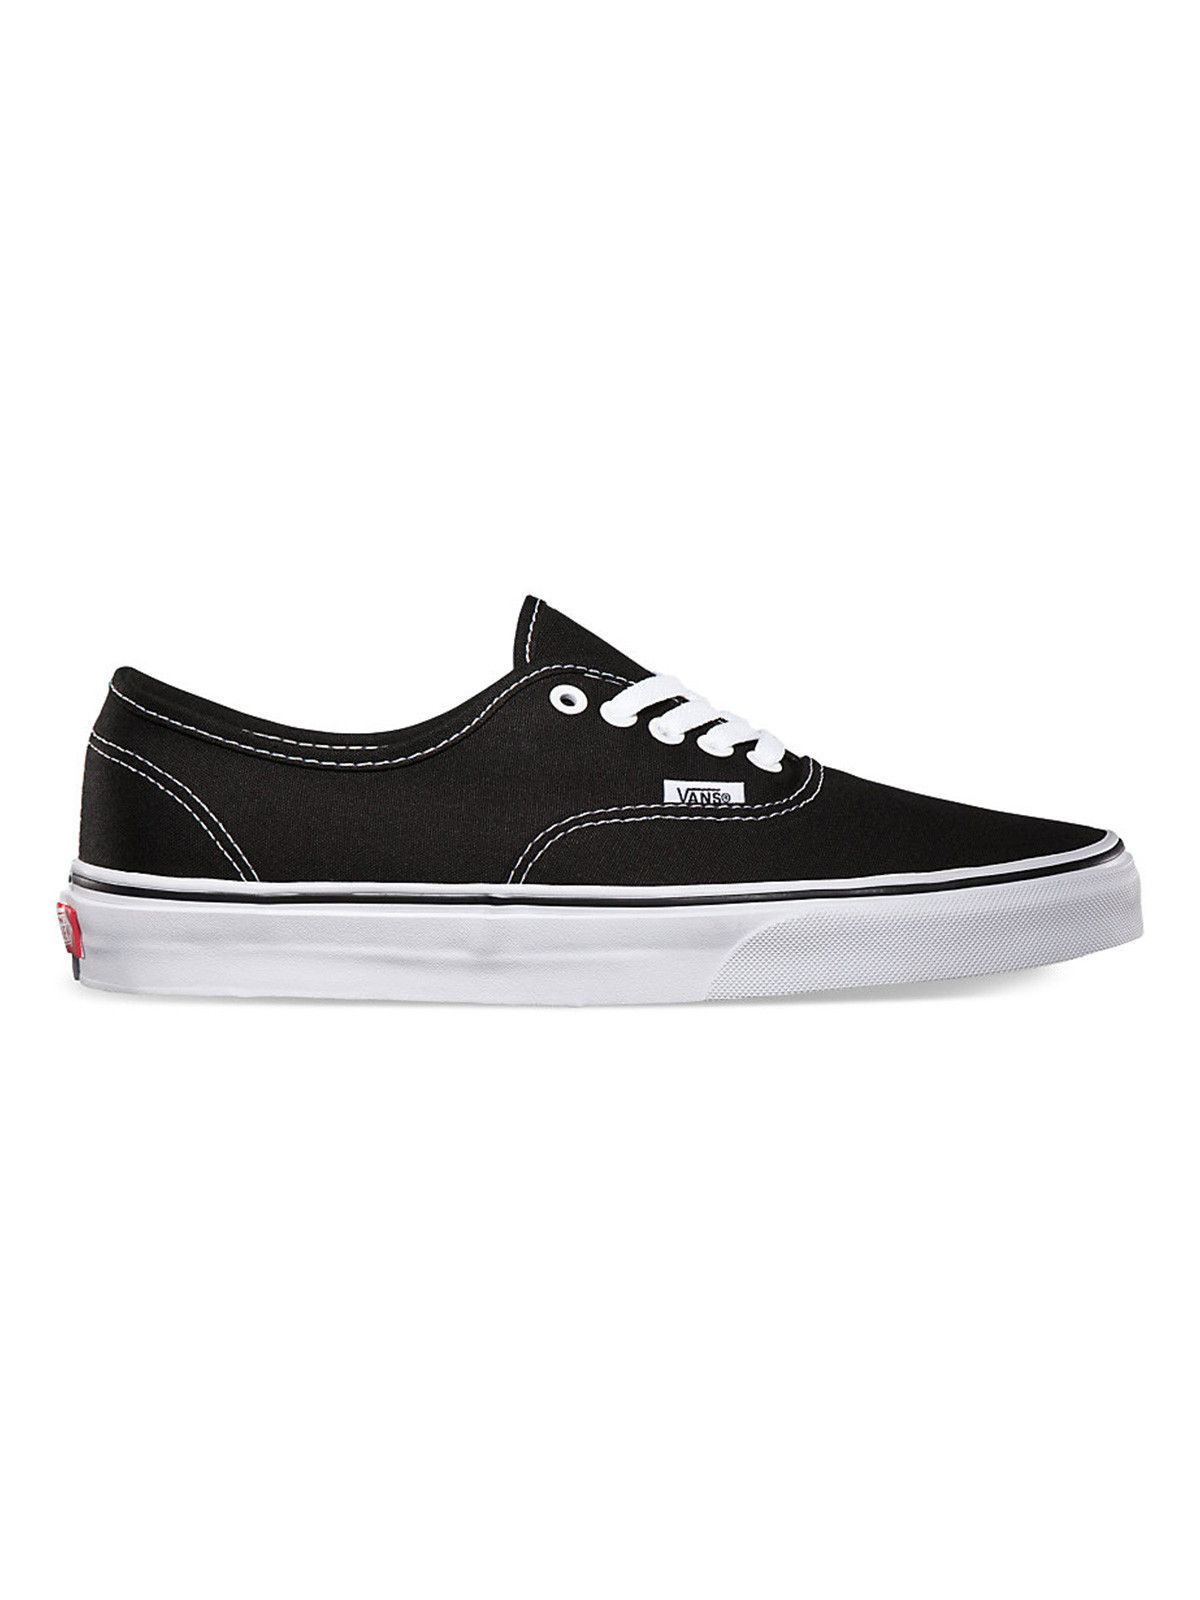 2f2a29ebda09 Vans Authentic - Black